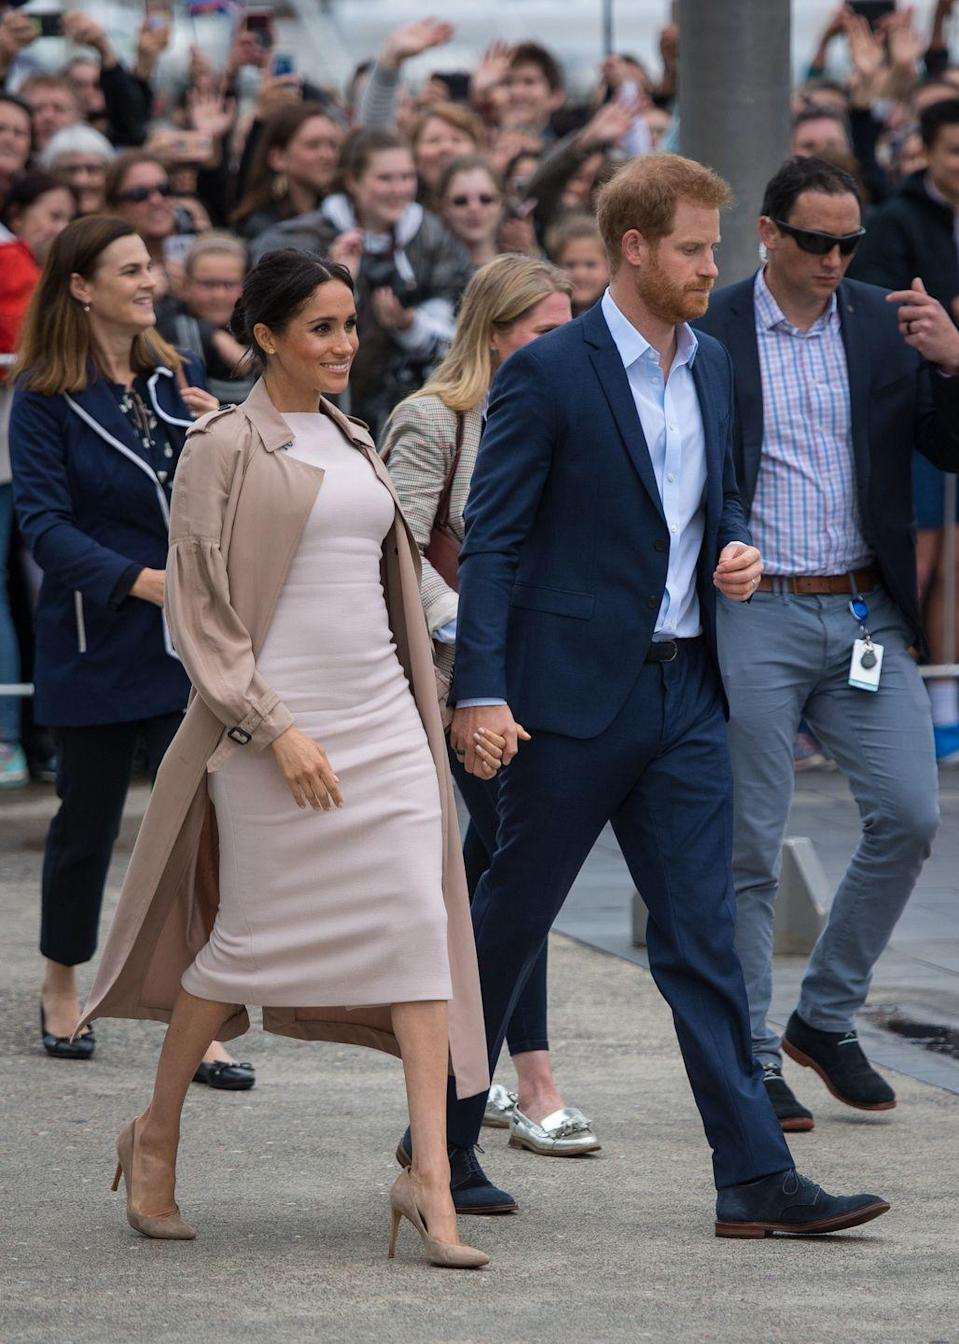 """<p>While in Auckland, Harry and Meghan greeted members of the public. The Ducehss paired a beige pencil dress by Brandon Maxwell with a Burberry trench and <a href=""""https://www.stuartweitzman.com/products/legend"""" rel=""""nofollow noopener"""" target=""""_blank"""" data-ylk=""""slk:Stuart Weitzman"""" class=""""link rapid-noclick-resp"""">Stuart Weitzman </a>pumps for the appearance.</p><p><a class=""""link rapid-noclick-resp"""" href=""""https://www.stuartweitzman.com/products/legend/"""" rel=""""nofollow noopener"""" target=""""_blank"""" data-ylk=""""slk:SHOP NOW"""">SHOP NOW</a> <em>Stuart Weitzman Legend Pumps, $375</em></p>"""